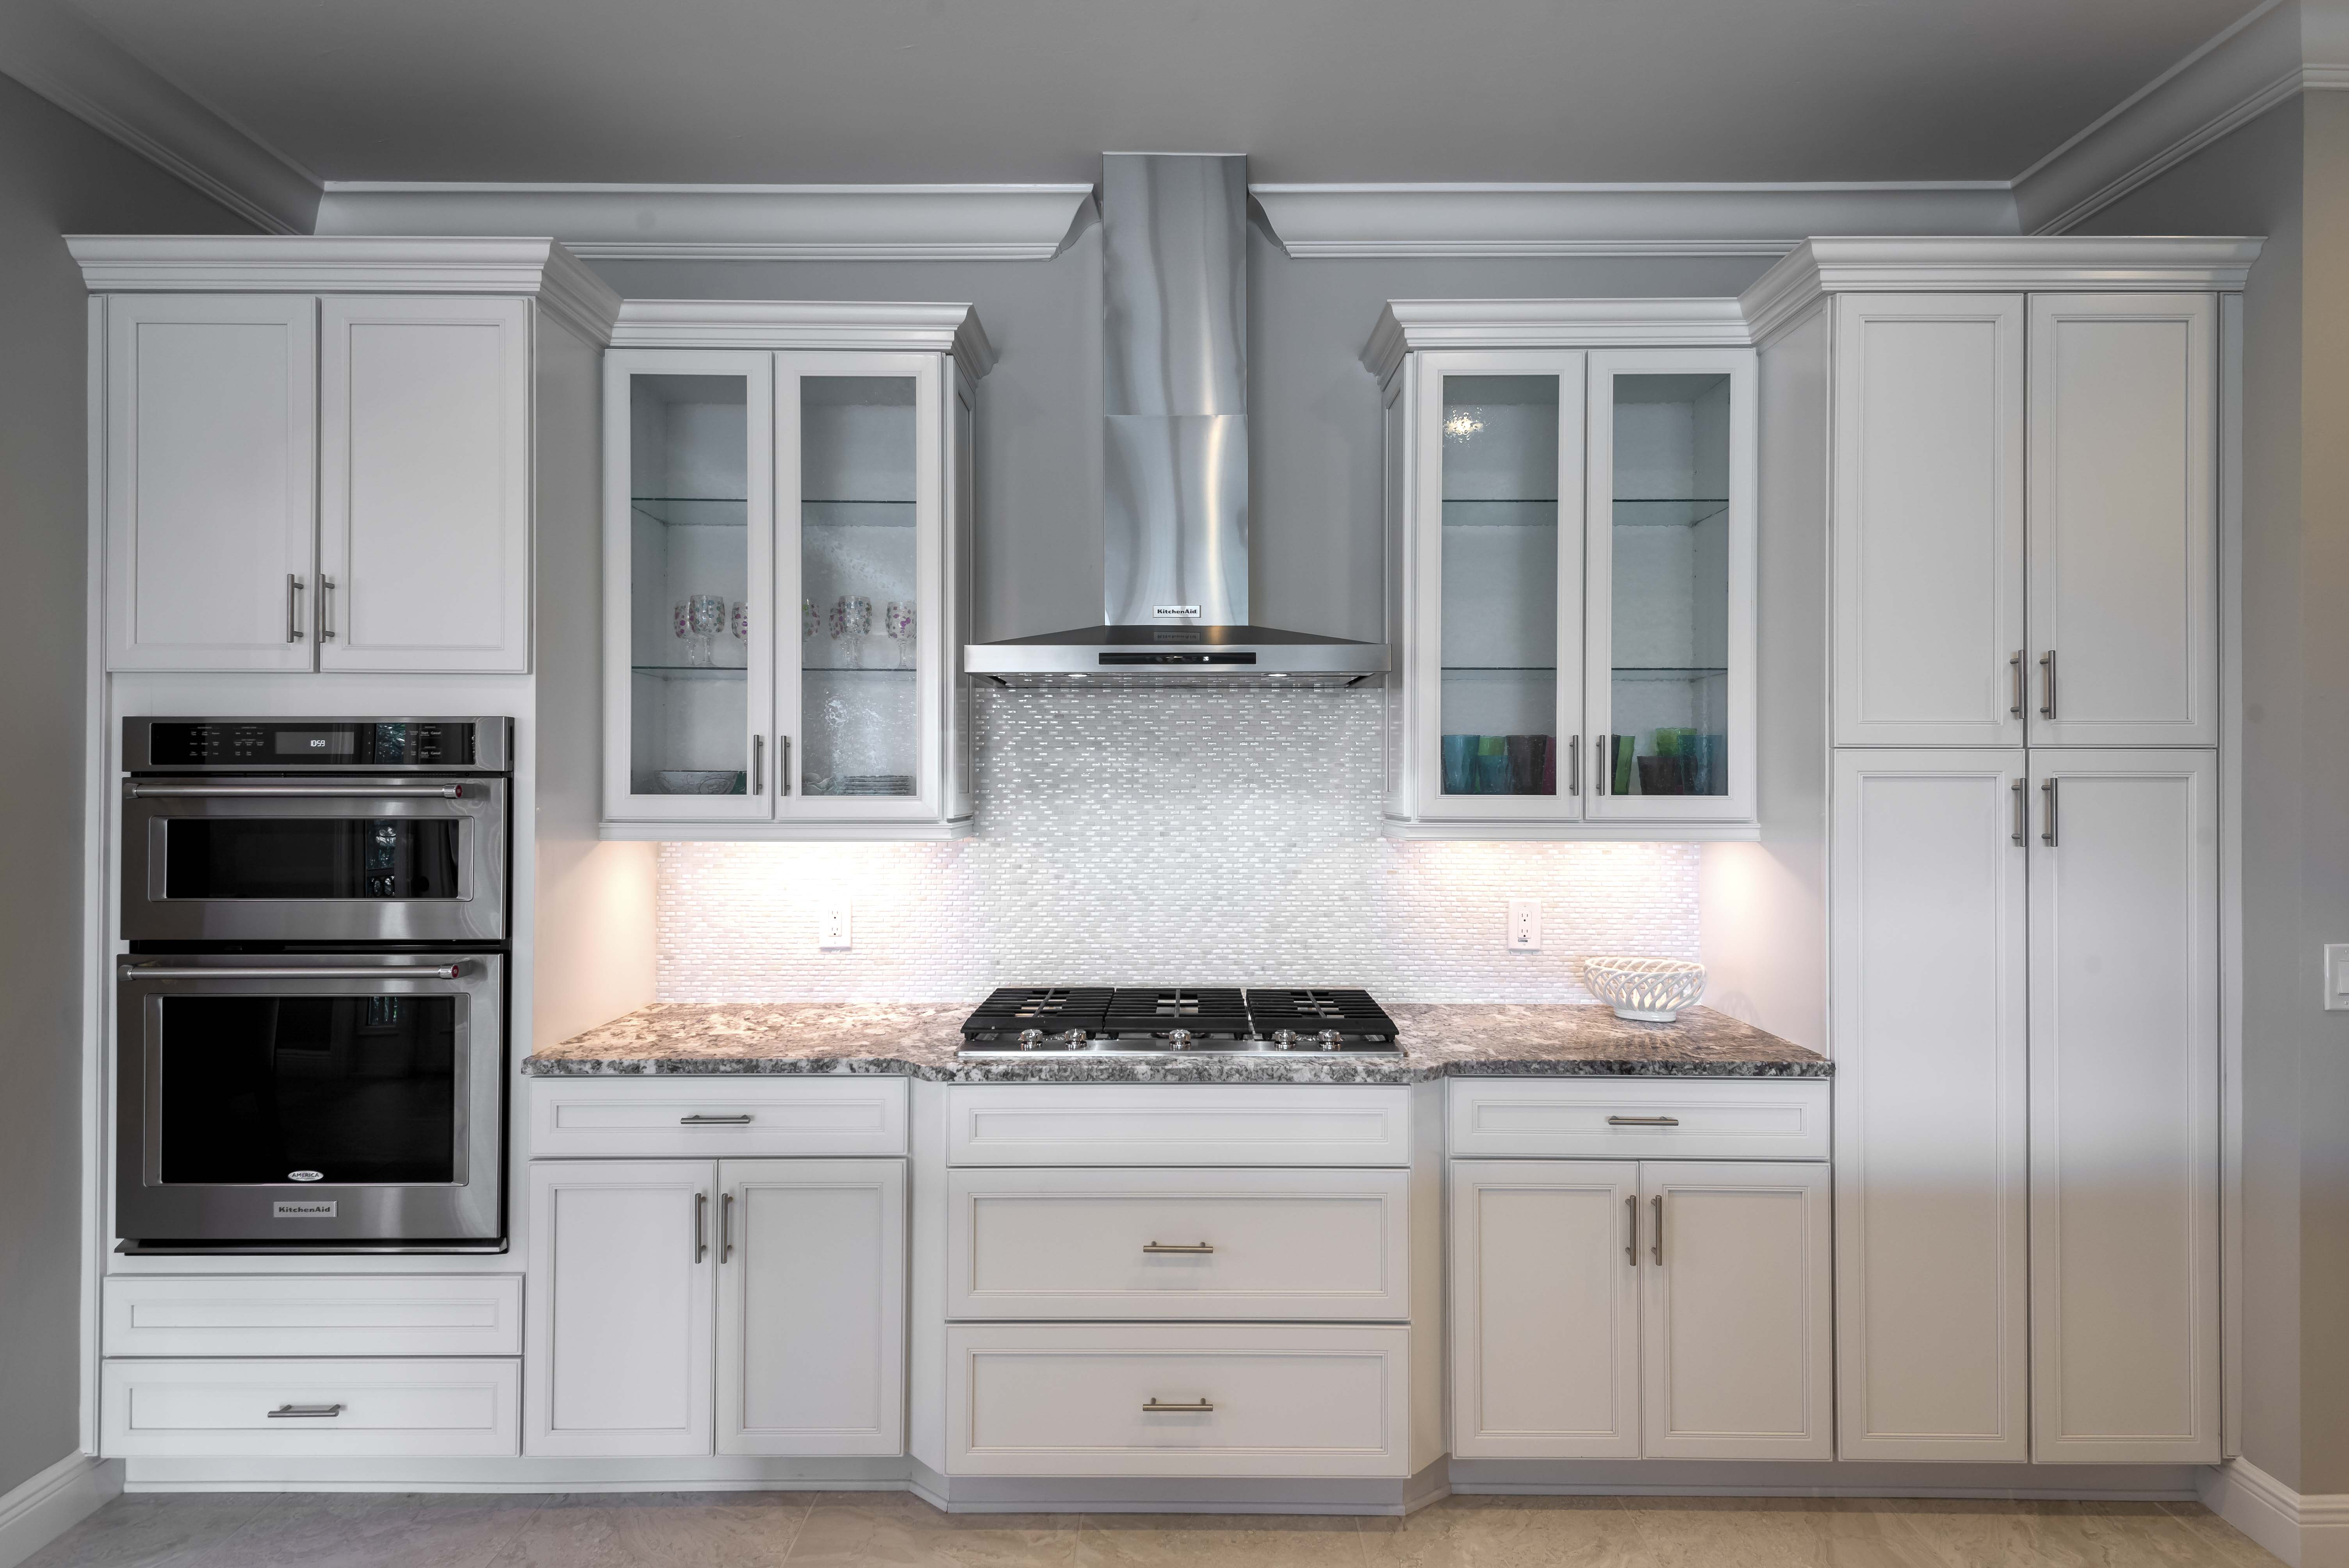 Talis-park-condo-naples-fl-kitchen-one-point-perspective